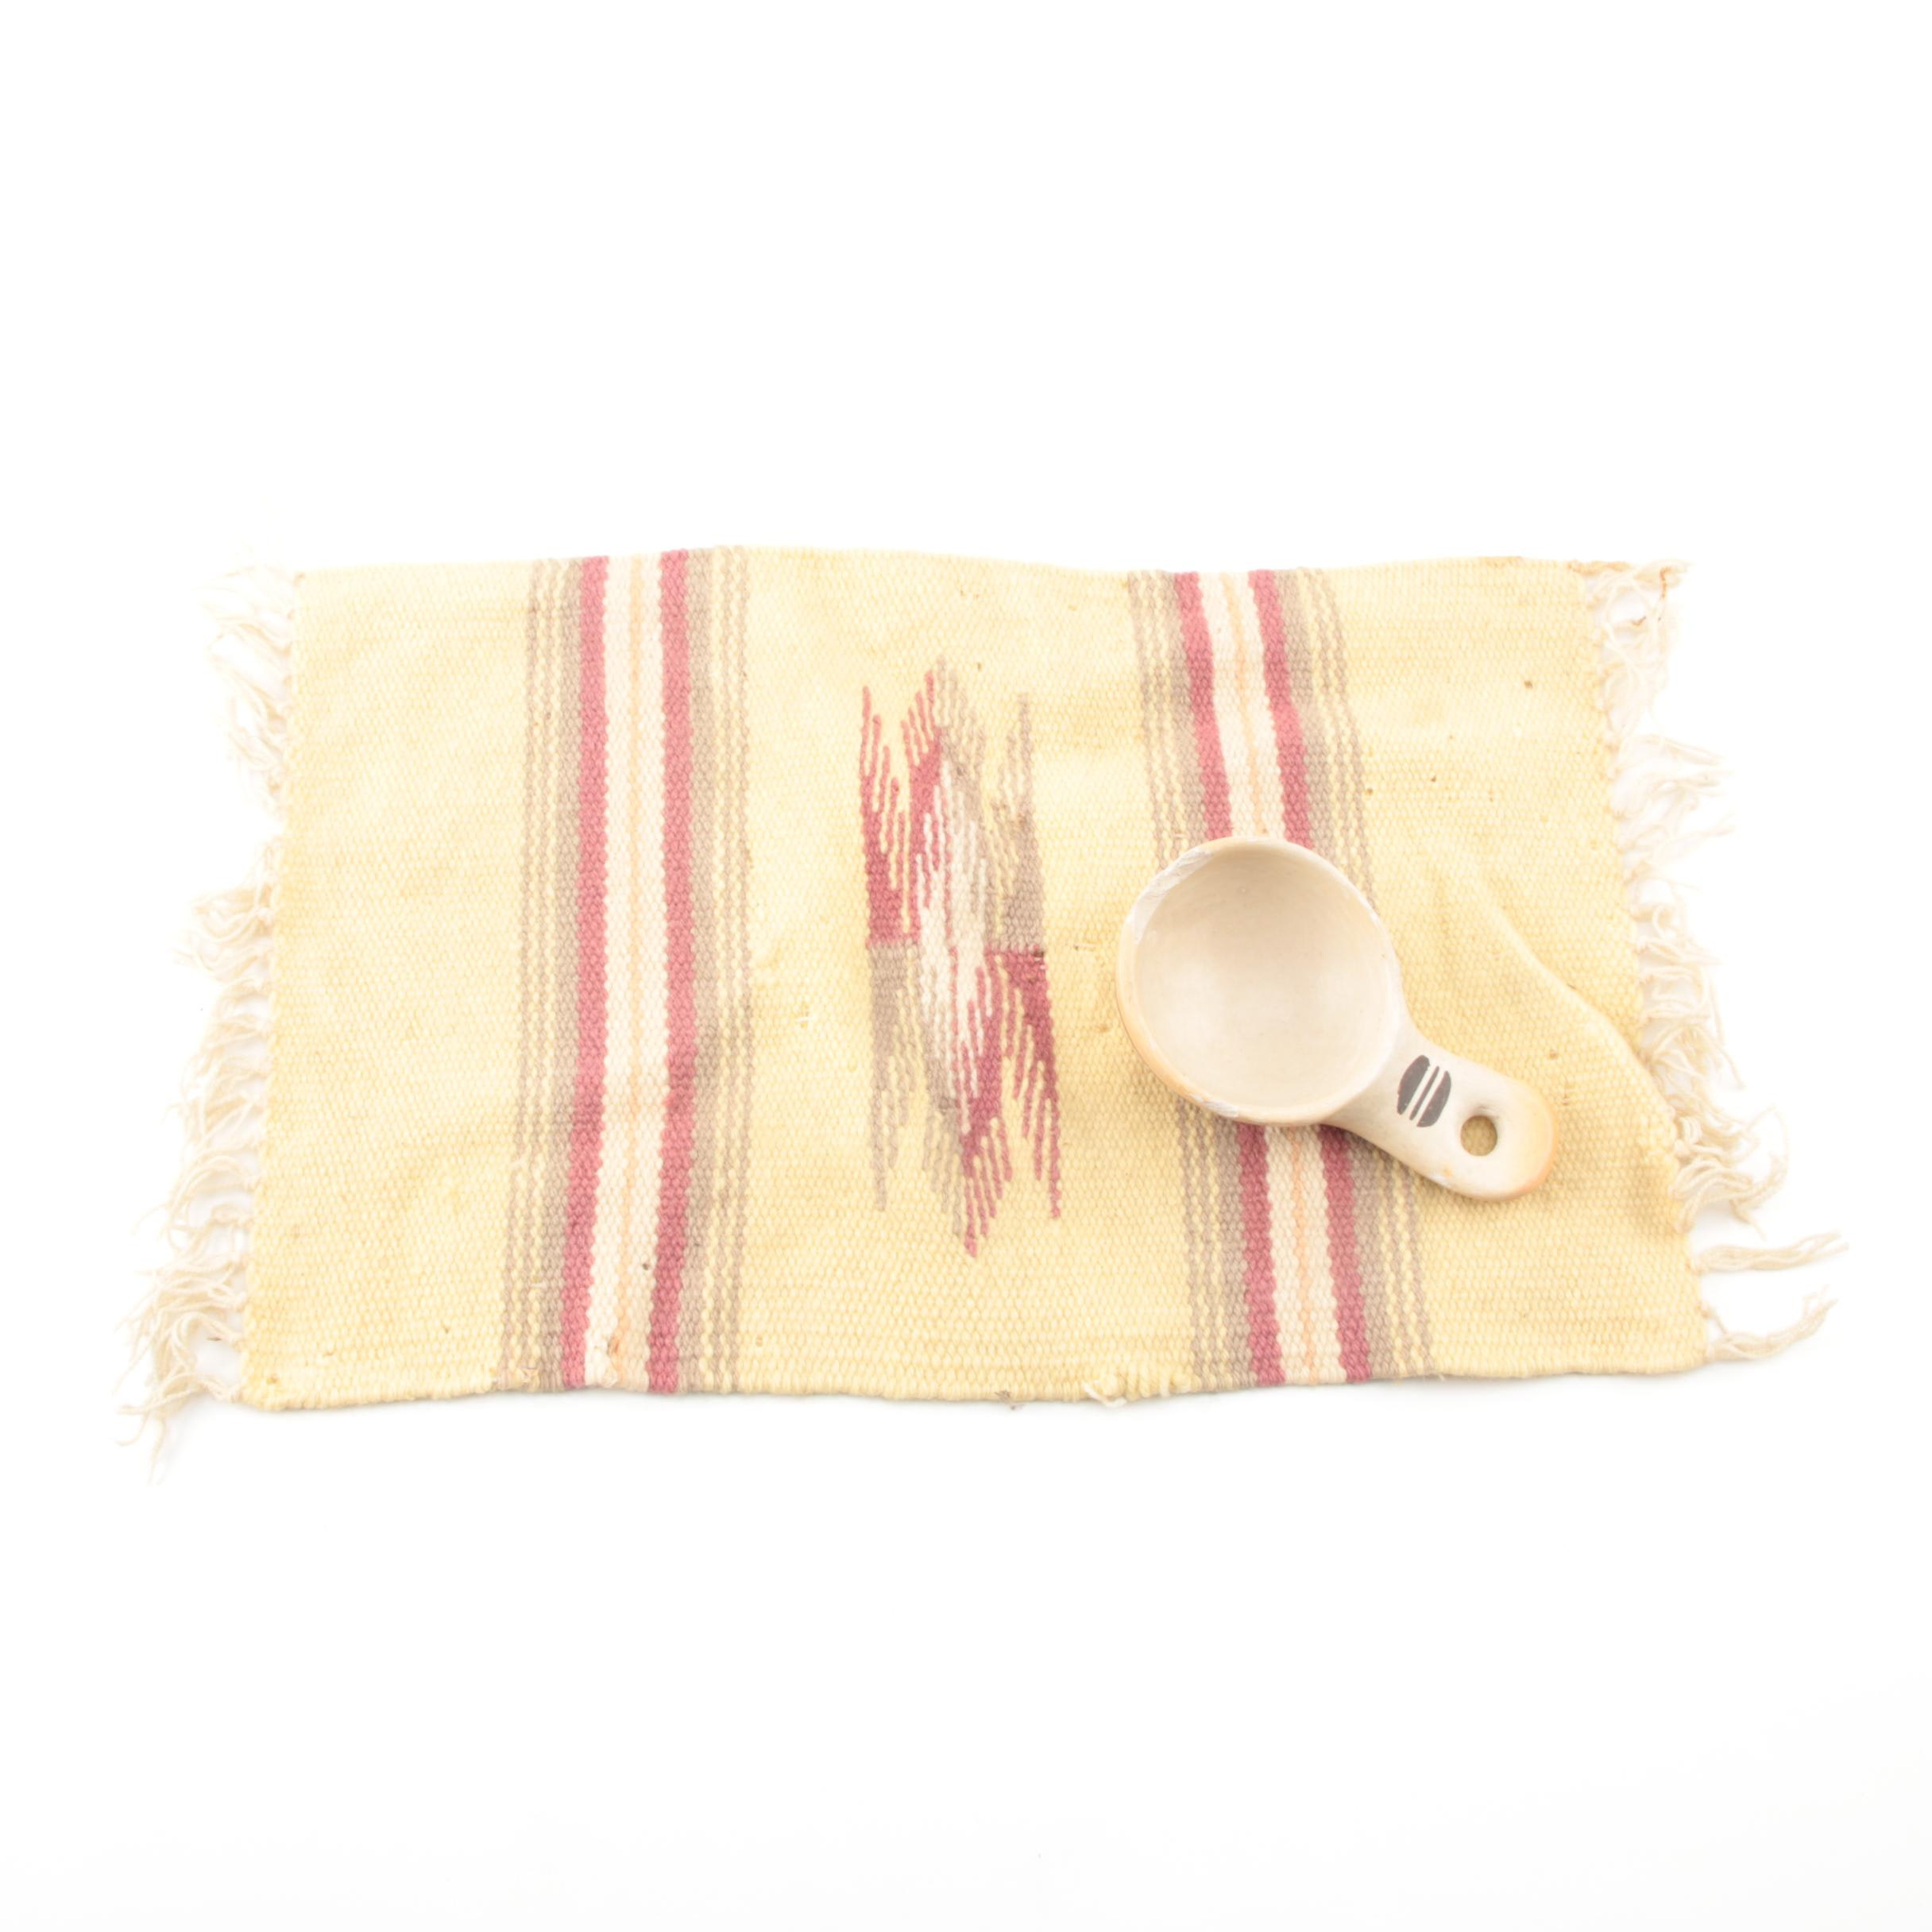 Signed Rachel Nampeyo Hopi Pottery Spoon and Placemat